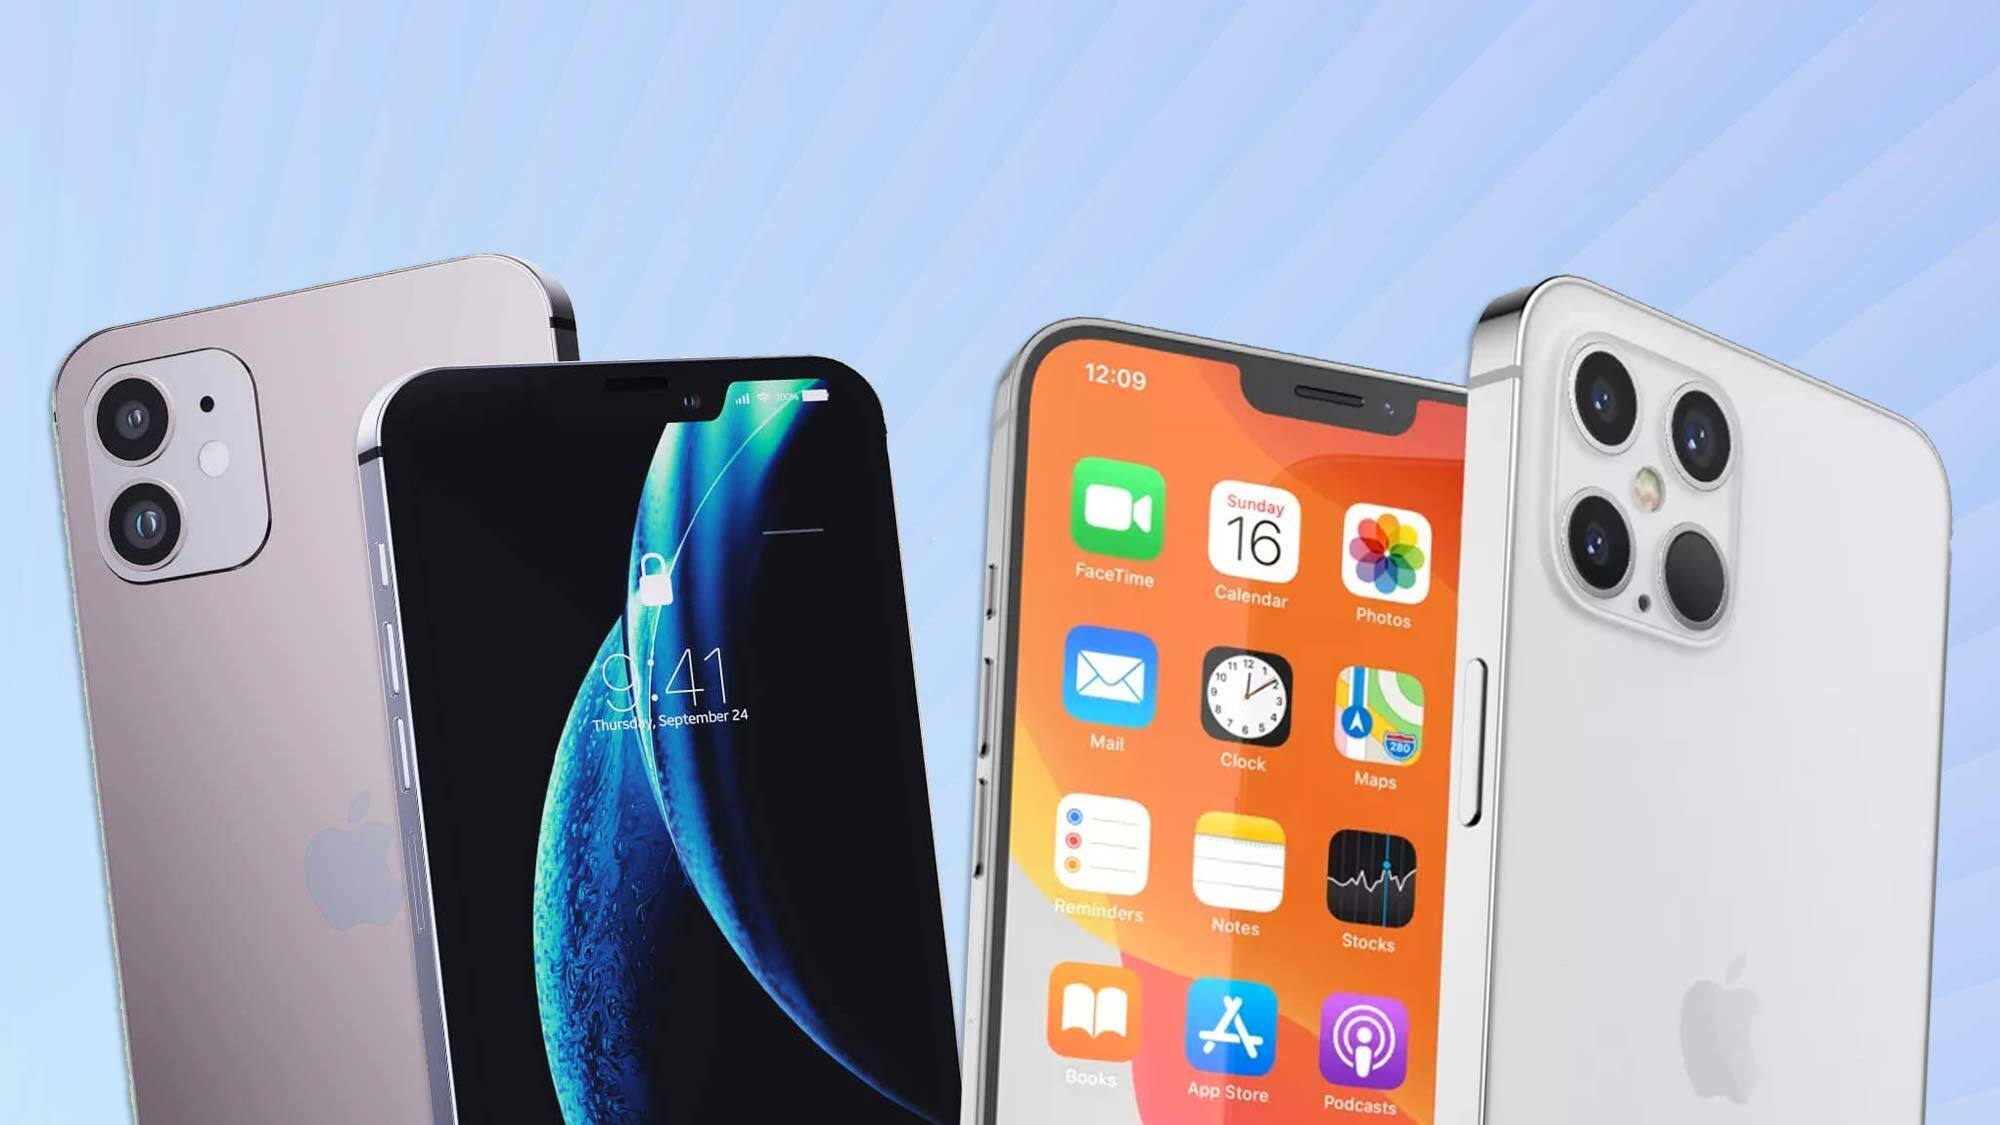 iPhone 12 vs.12 Pro series: which should you buy?